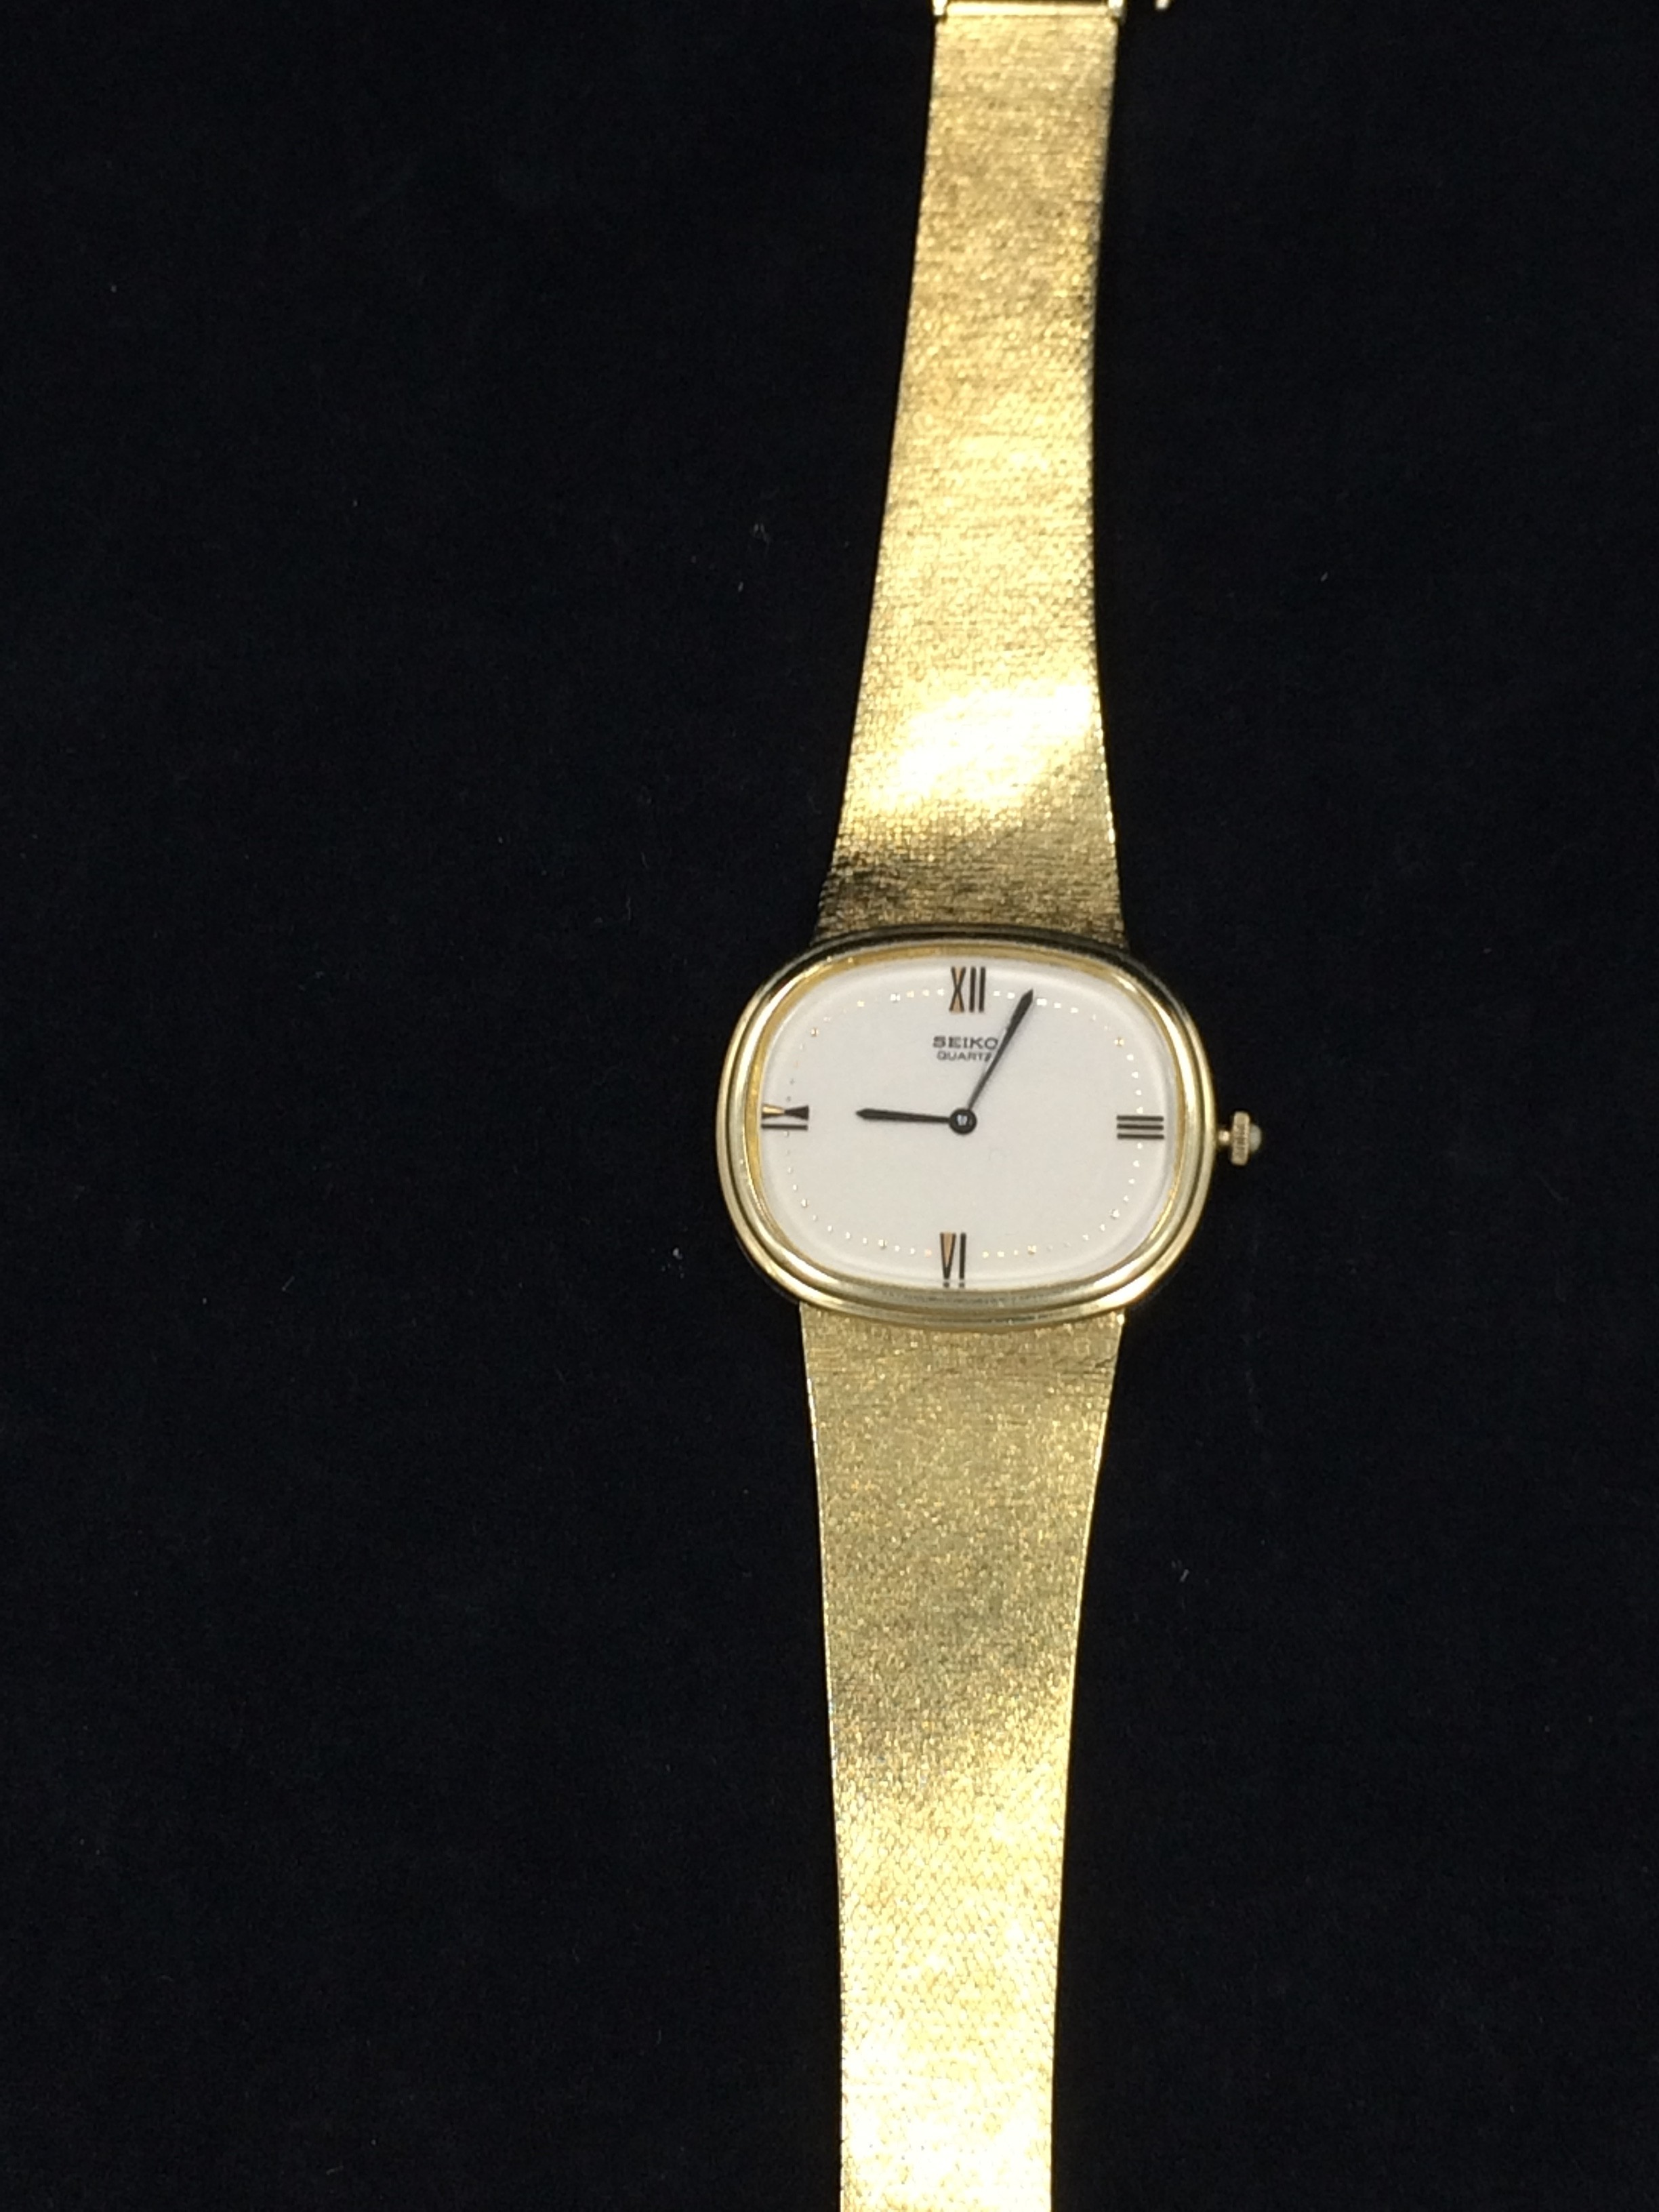 Gents Gold Watch